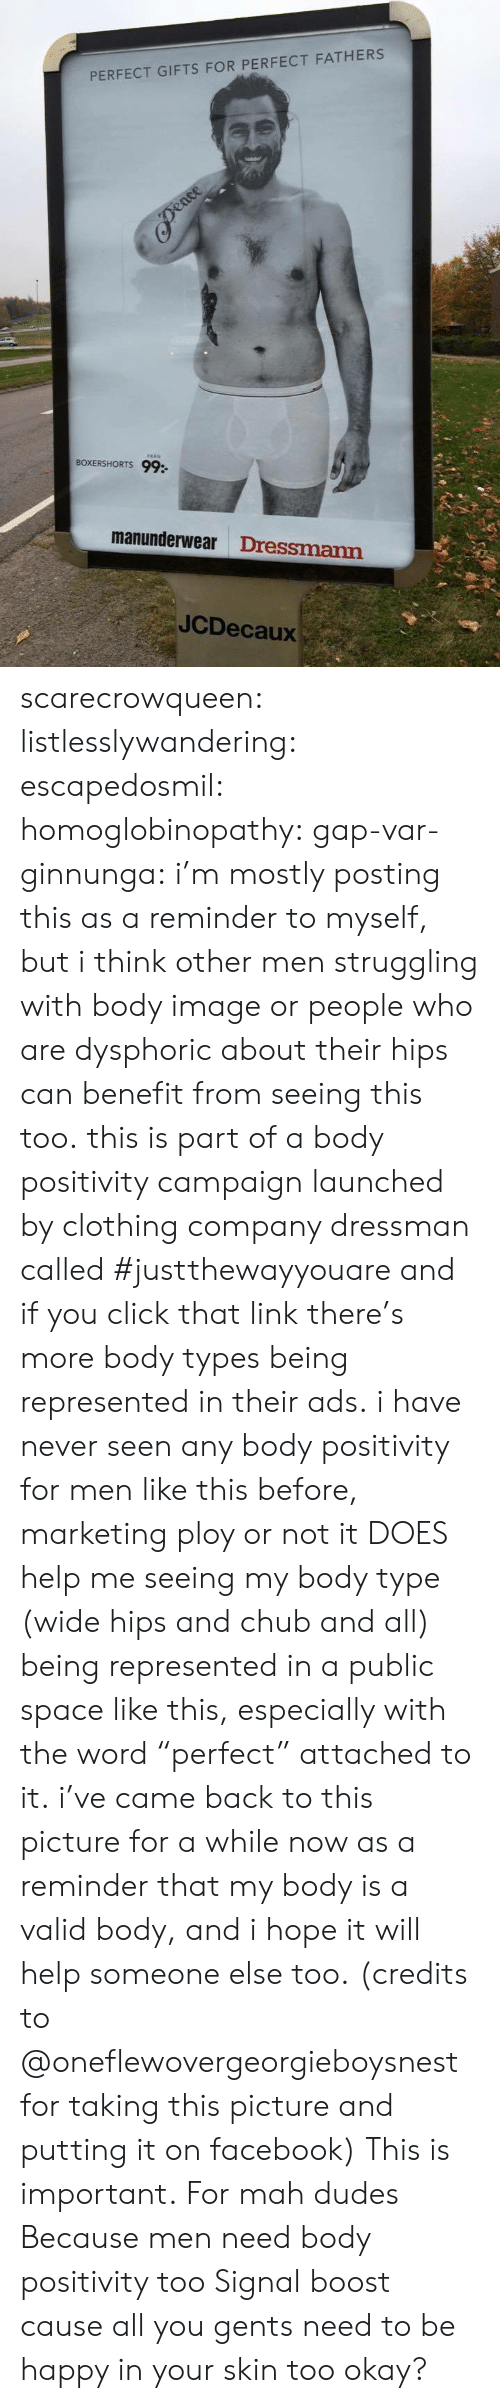 "Other Men: PERFECT GIFTS FOR PERFECT FATHERS  BOXERSHORTS 99:  manunderwear Dressmann  JCDecaux scarecrowqueen:  listlesslywandering:  escapedosmil:  homoglobinopathy:  gap-var-ginnunga:  i'm mostly posting this as a reminder to myself, but i think other men struggling with body image or people who are dysphoric about their hips can benefit from seeing this too. this is part of a body positivity campaign launched by clothing company dressman called #justthewayyouare and if you click that link there's more body types being represented in their ads. i have never seen any body positivity for men like this before, marketing ploy or not it DOES help me seeing my body type (wide hips and chub and all) being represented in a public space like this, especially with the word ""perfect"" attached to it. i've came back to this picture for a while now as a reminder that my body is a valid body, and i hope it will help someone else too. (credits to @oneflewovergeorgieboysnest for taking this picture and putting it on facebook)  This is important.  For mah dudes  Because men need body positivity too  Signal boost cause all you gents need to be happy in your skin too okay?"